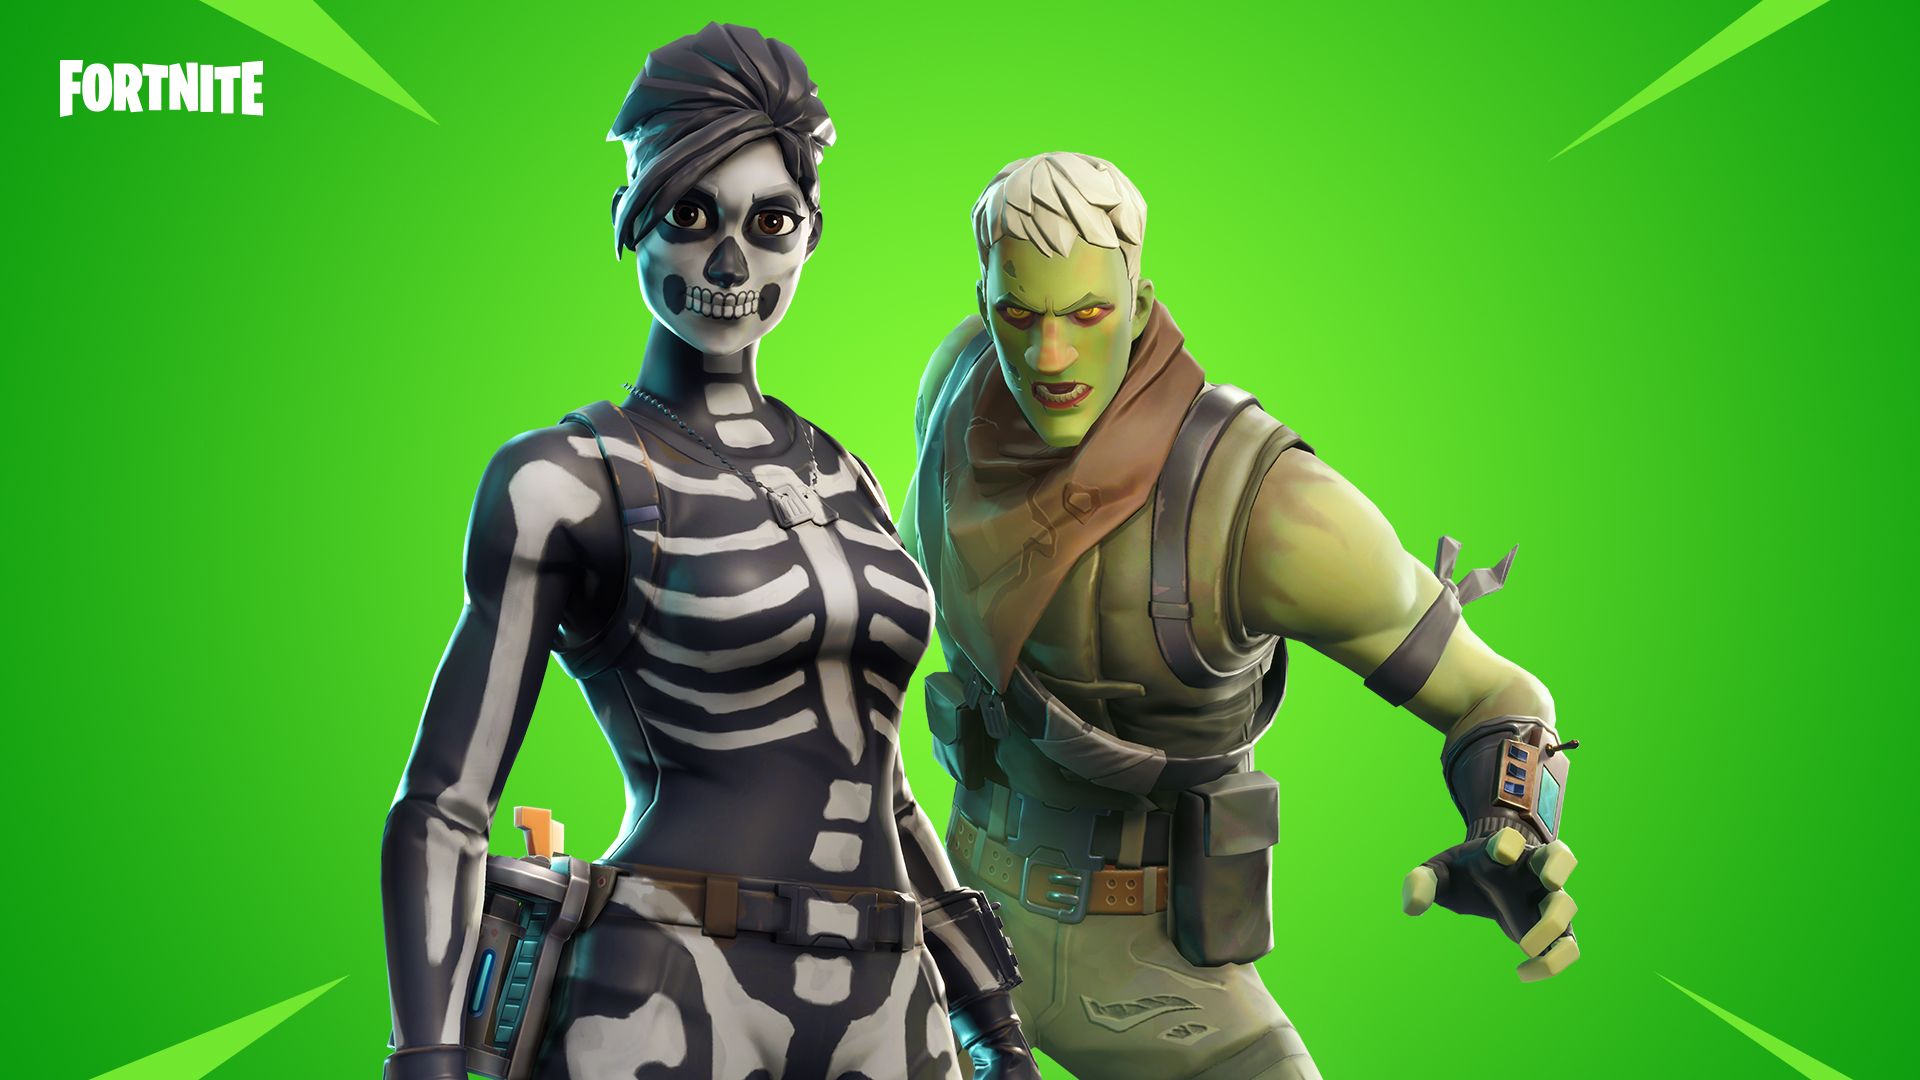 When Does Fortnite Save The World Halloween Event 2020 Start Fortnite's Save the World free to play launch pushed back to next